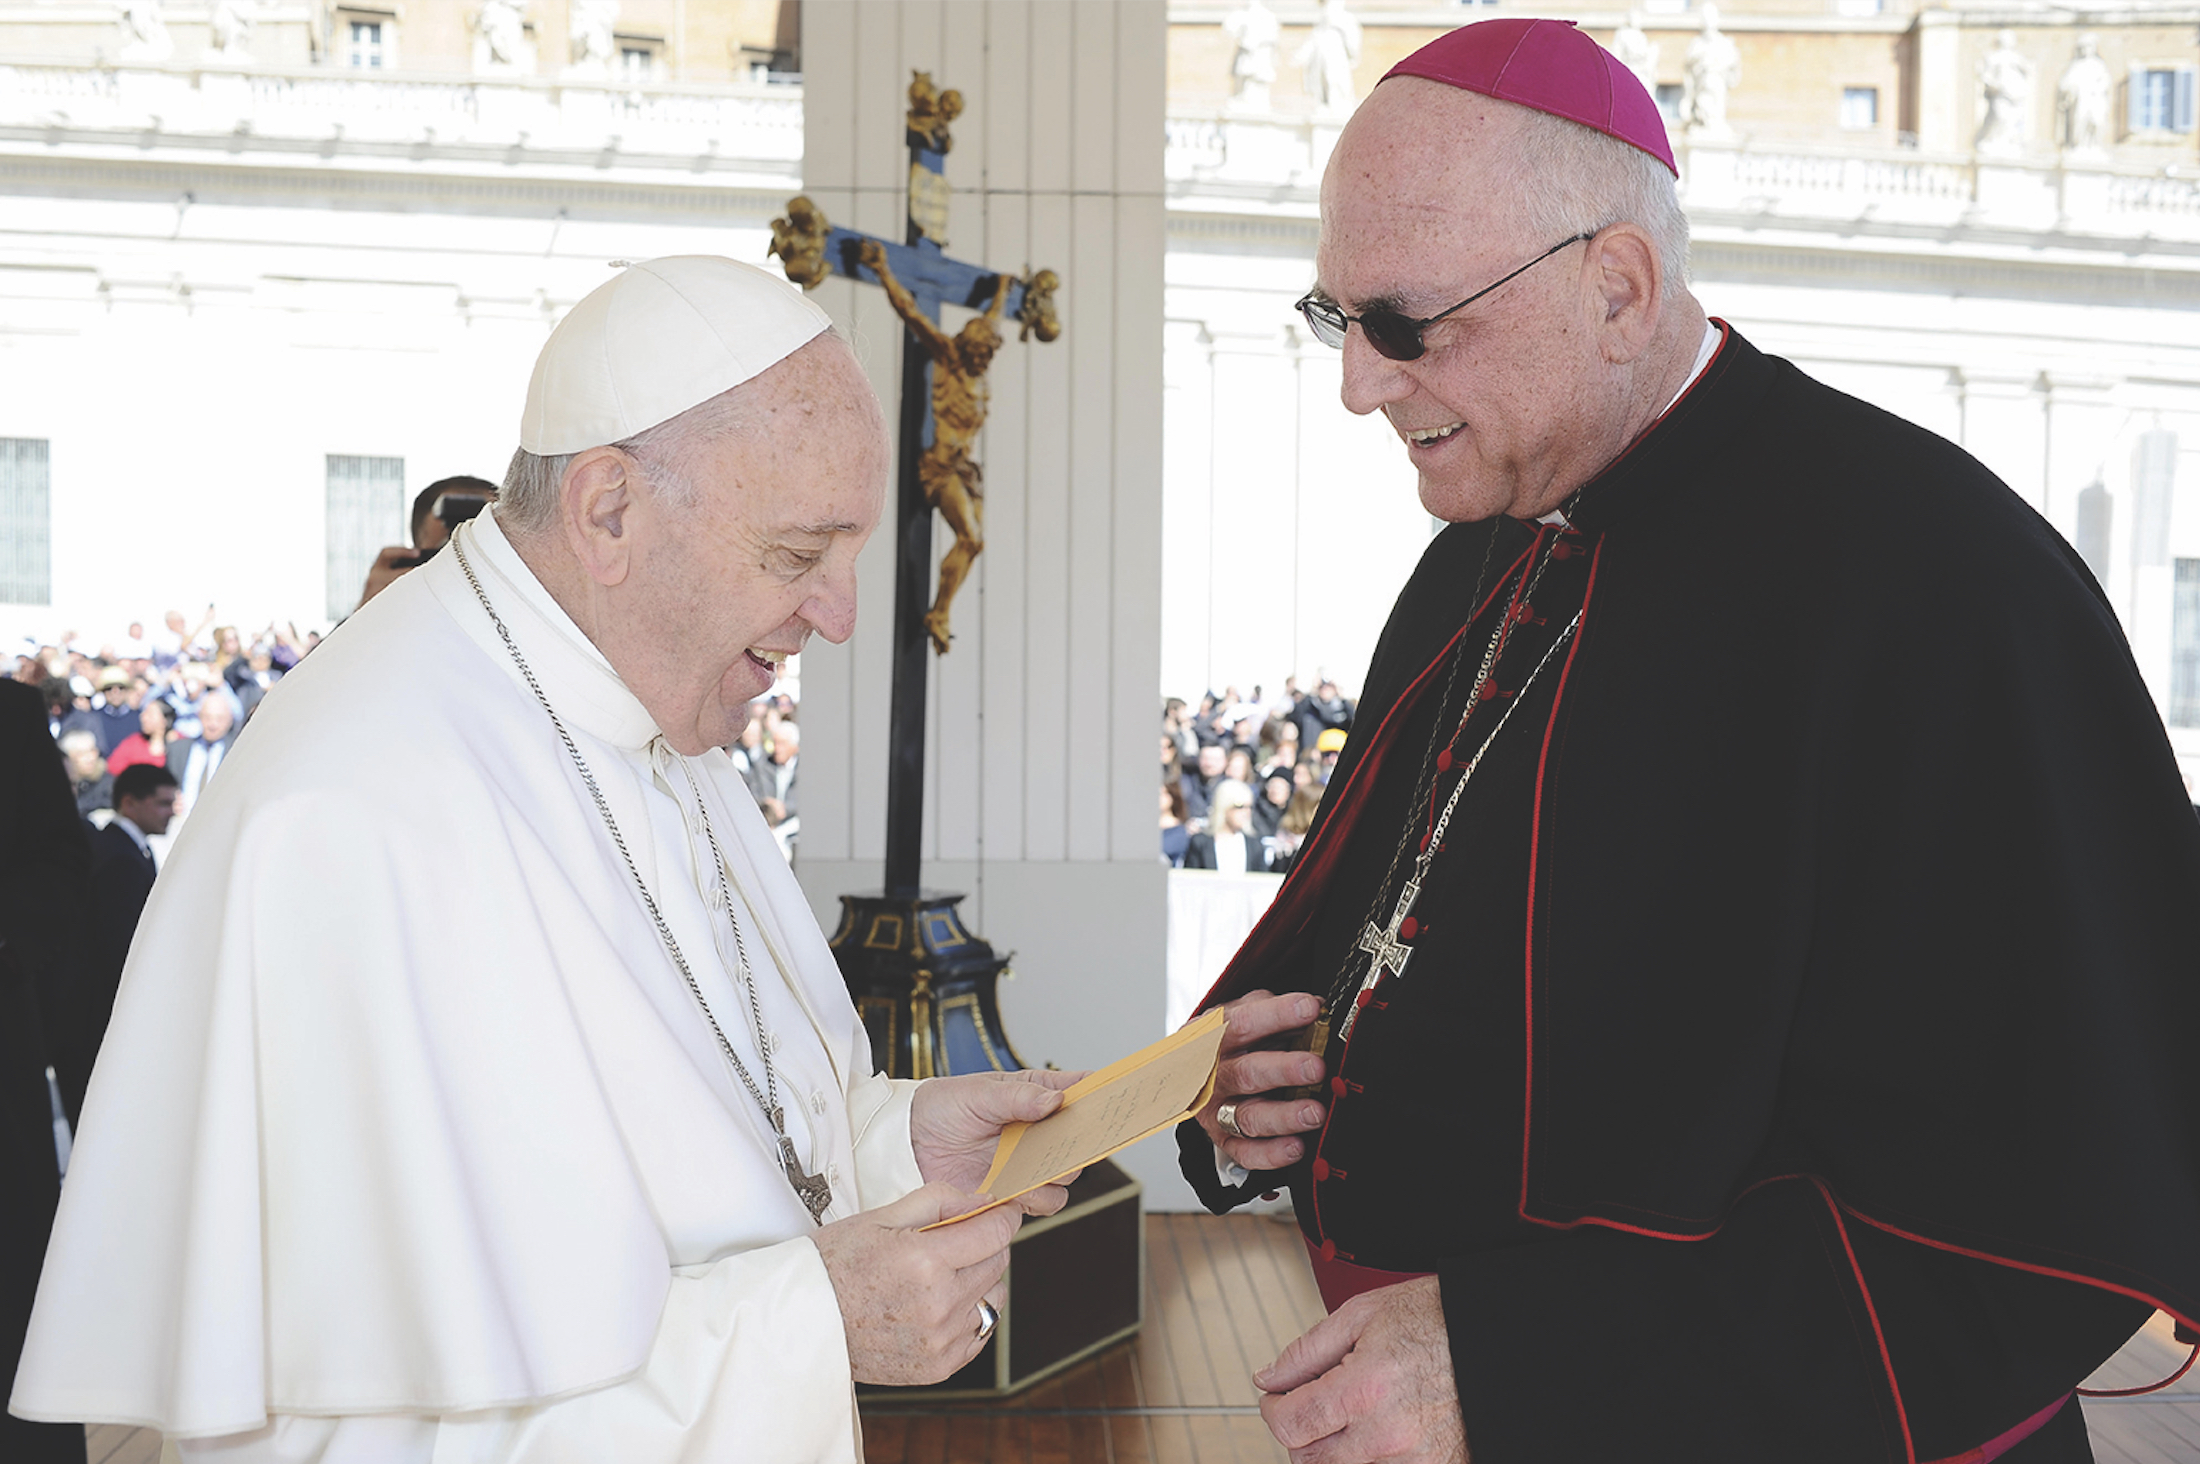 Busy rome visit included chat with pope francis i presented the photo to pope francis when i had the opportunity to greet him at his general audience on wednesday march 15 kristyandbryce Image collections